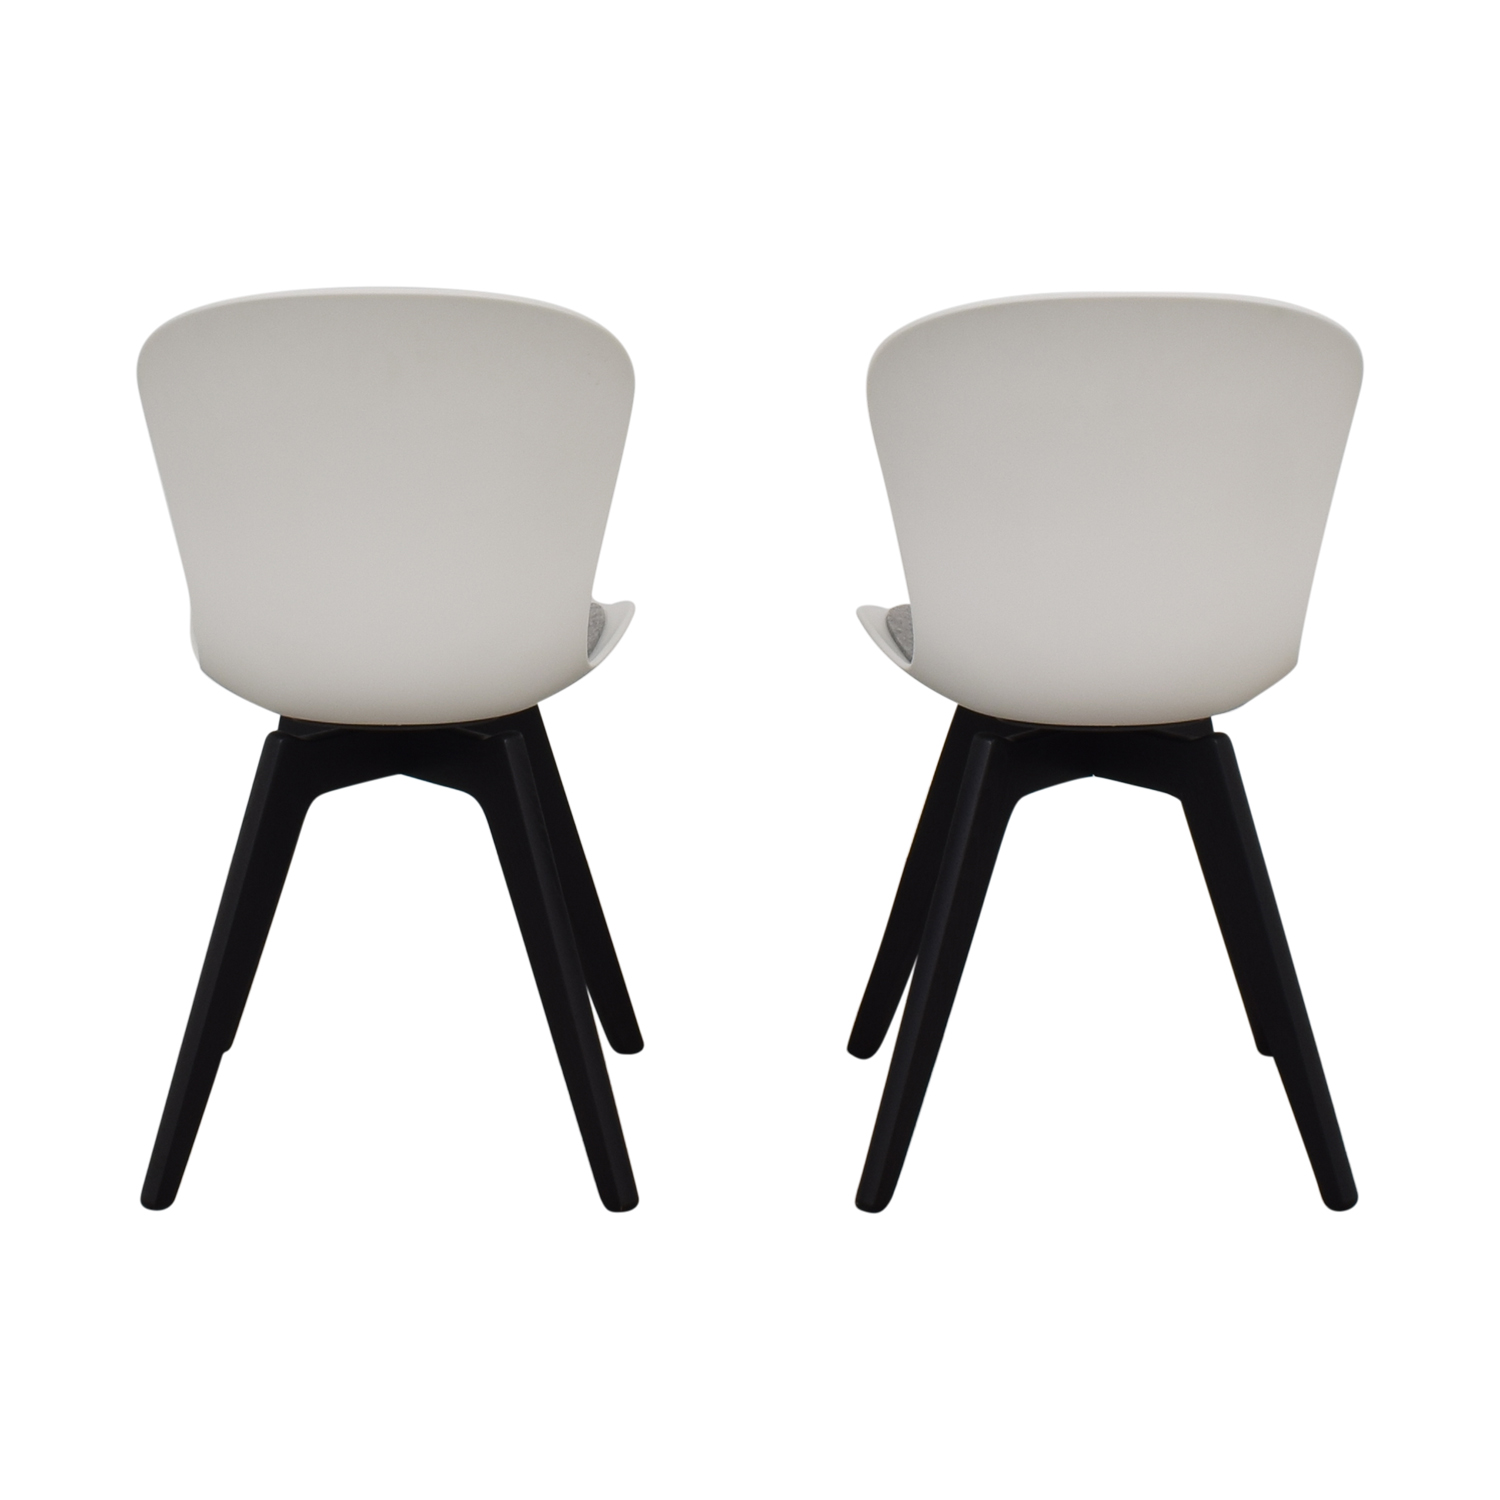 BoConcept BoConcept Adelaide Chairs with Morgan Seat Cushions second hand